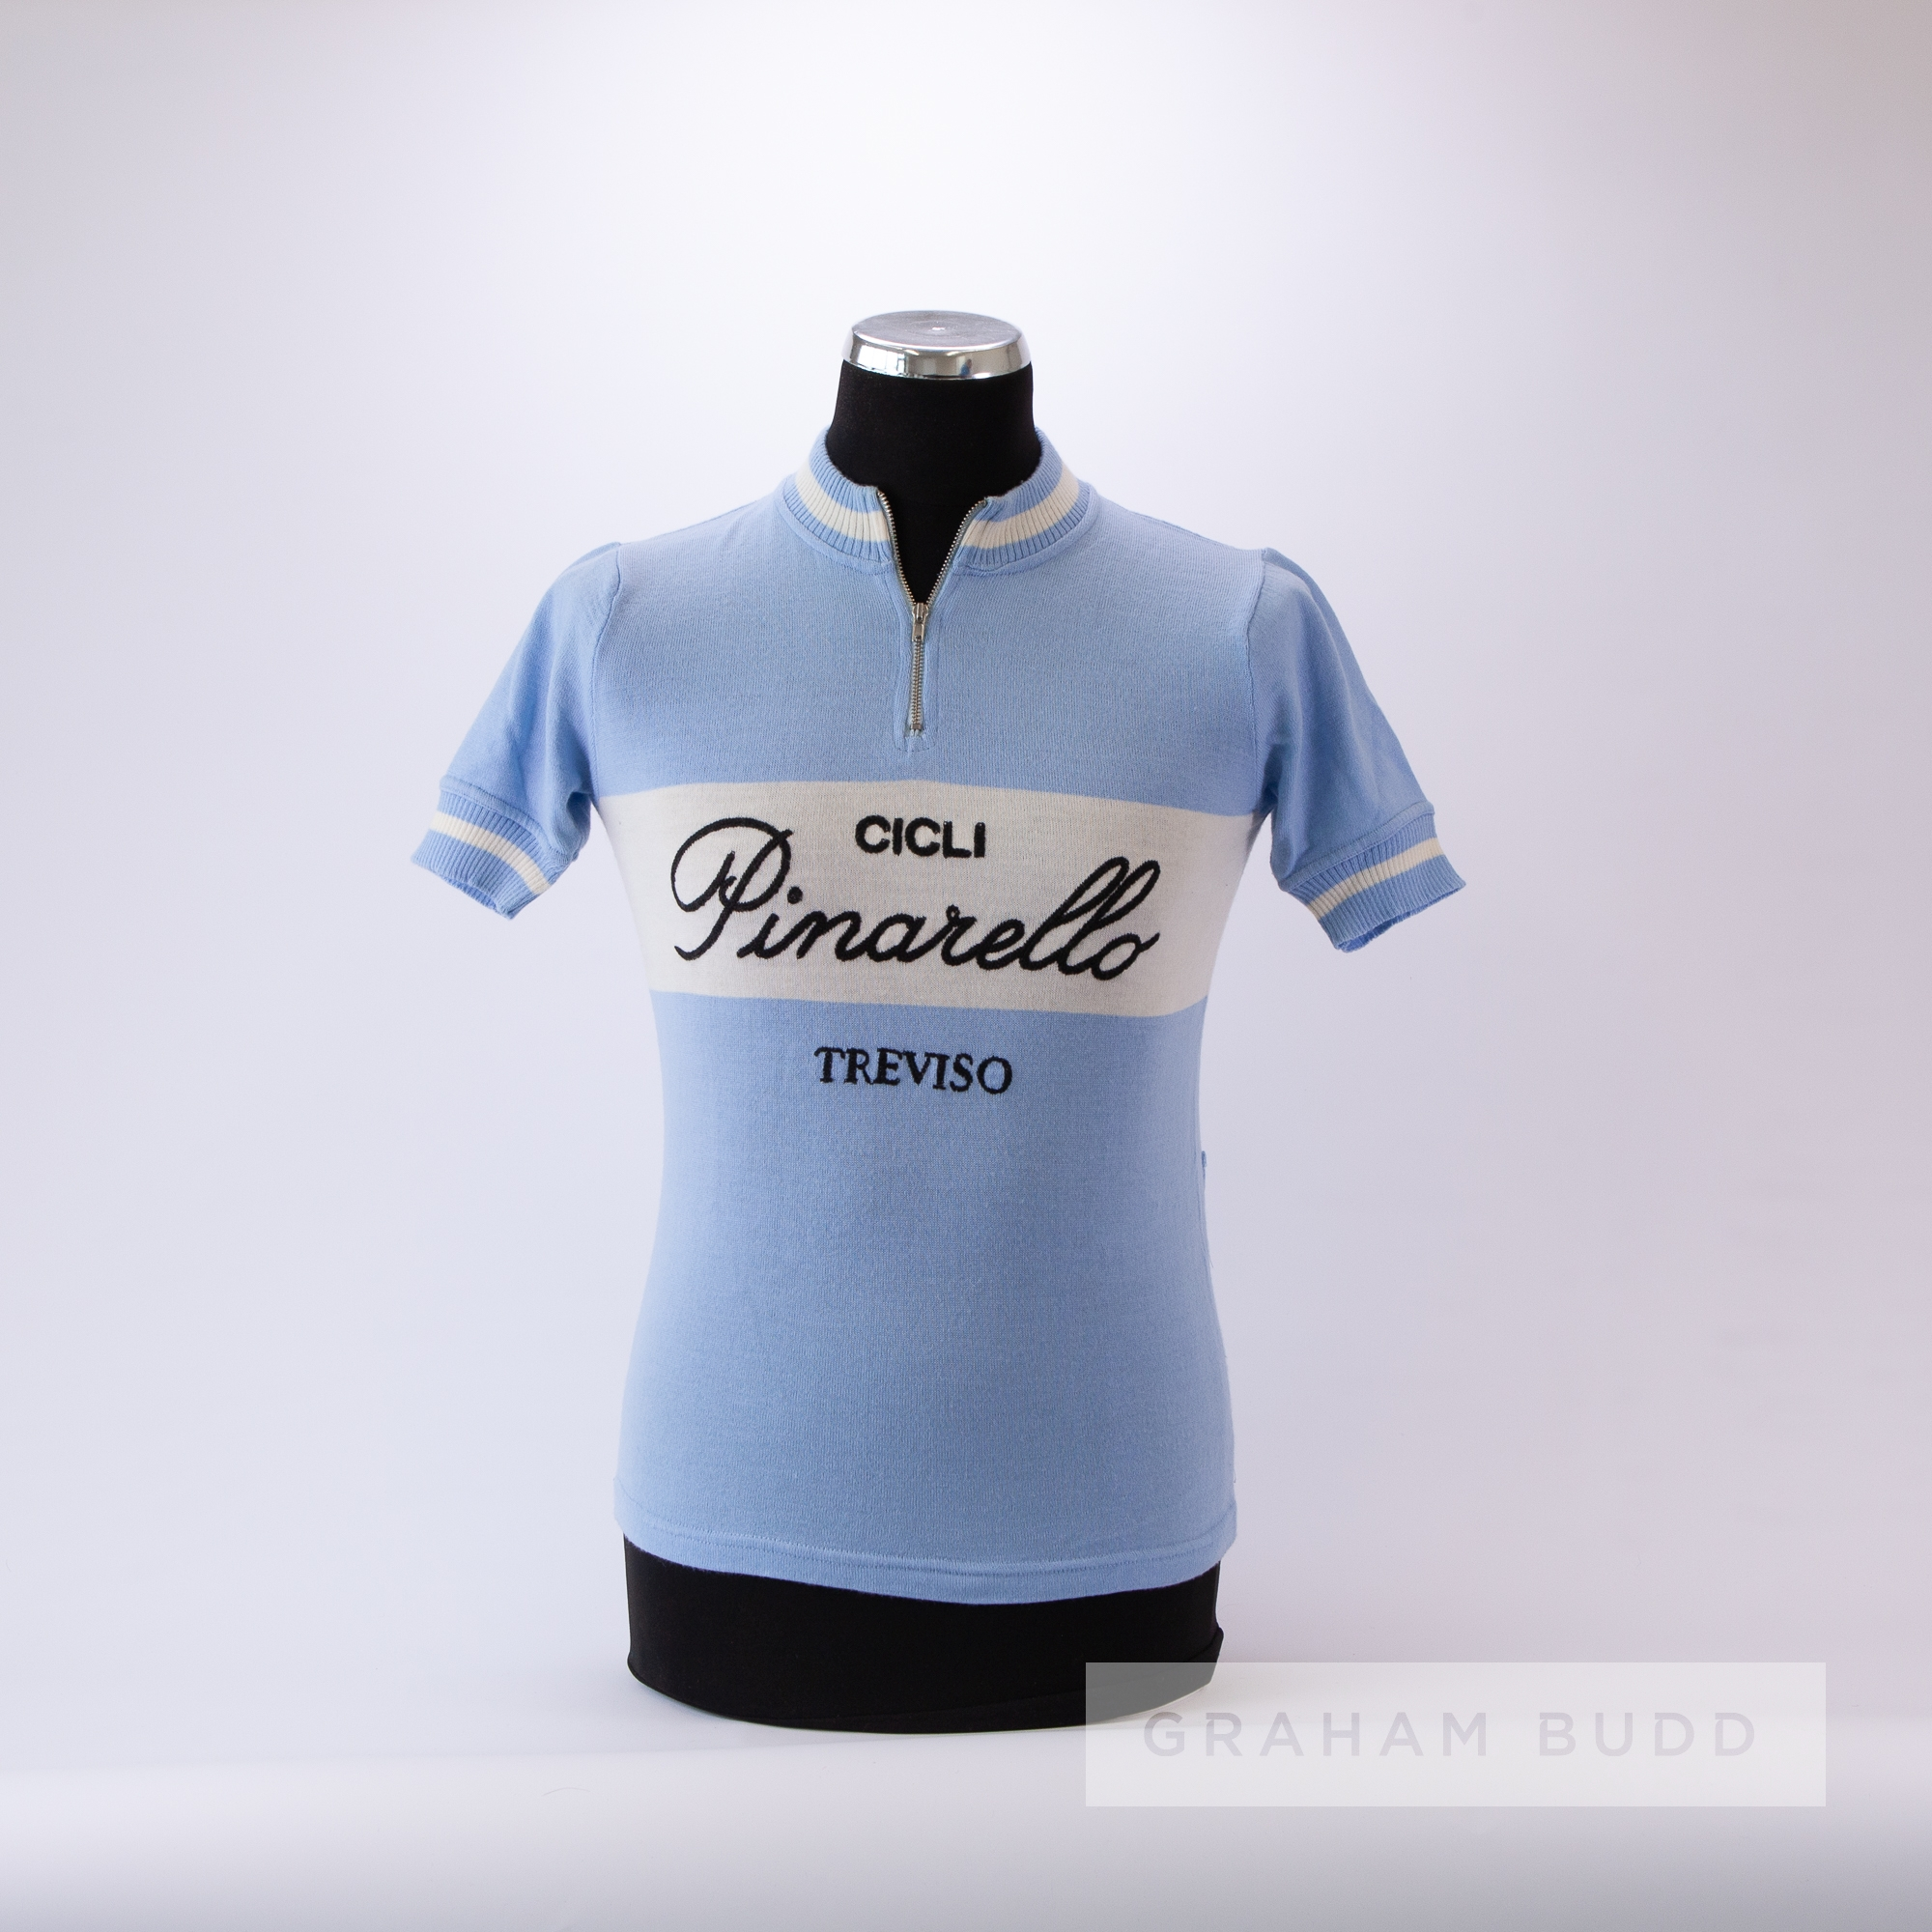 1970s light blue and white vintage Cicli Pinarello Cycling race jersey, scarce, wool short-sleeved - Image 3 of 4